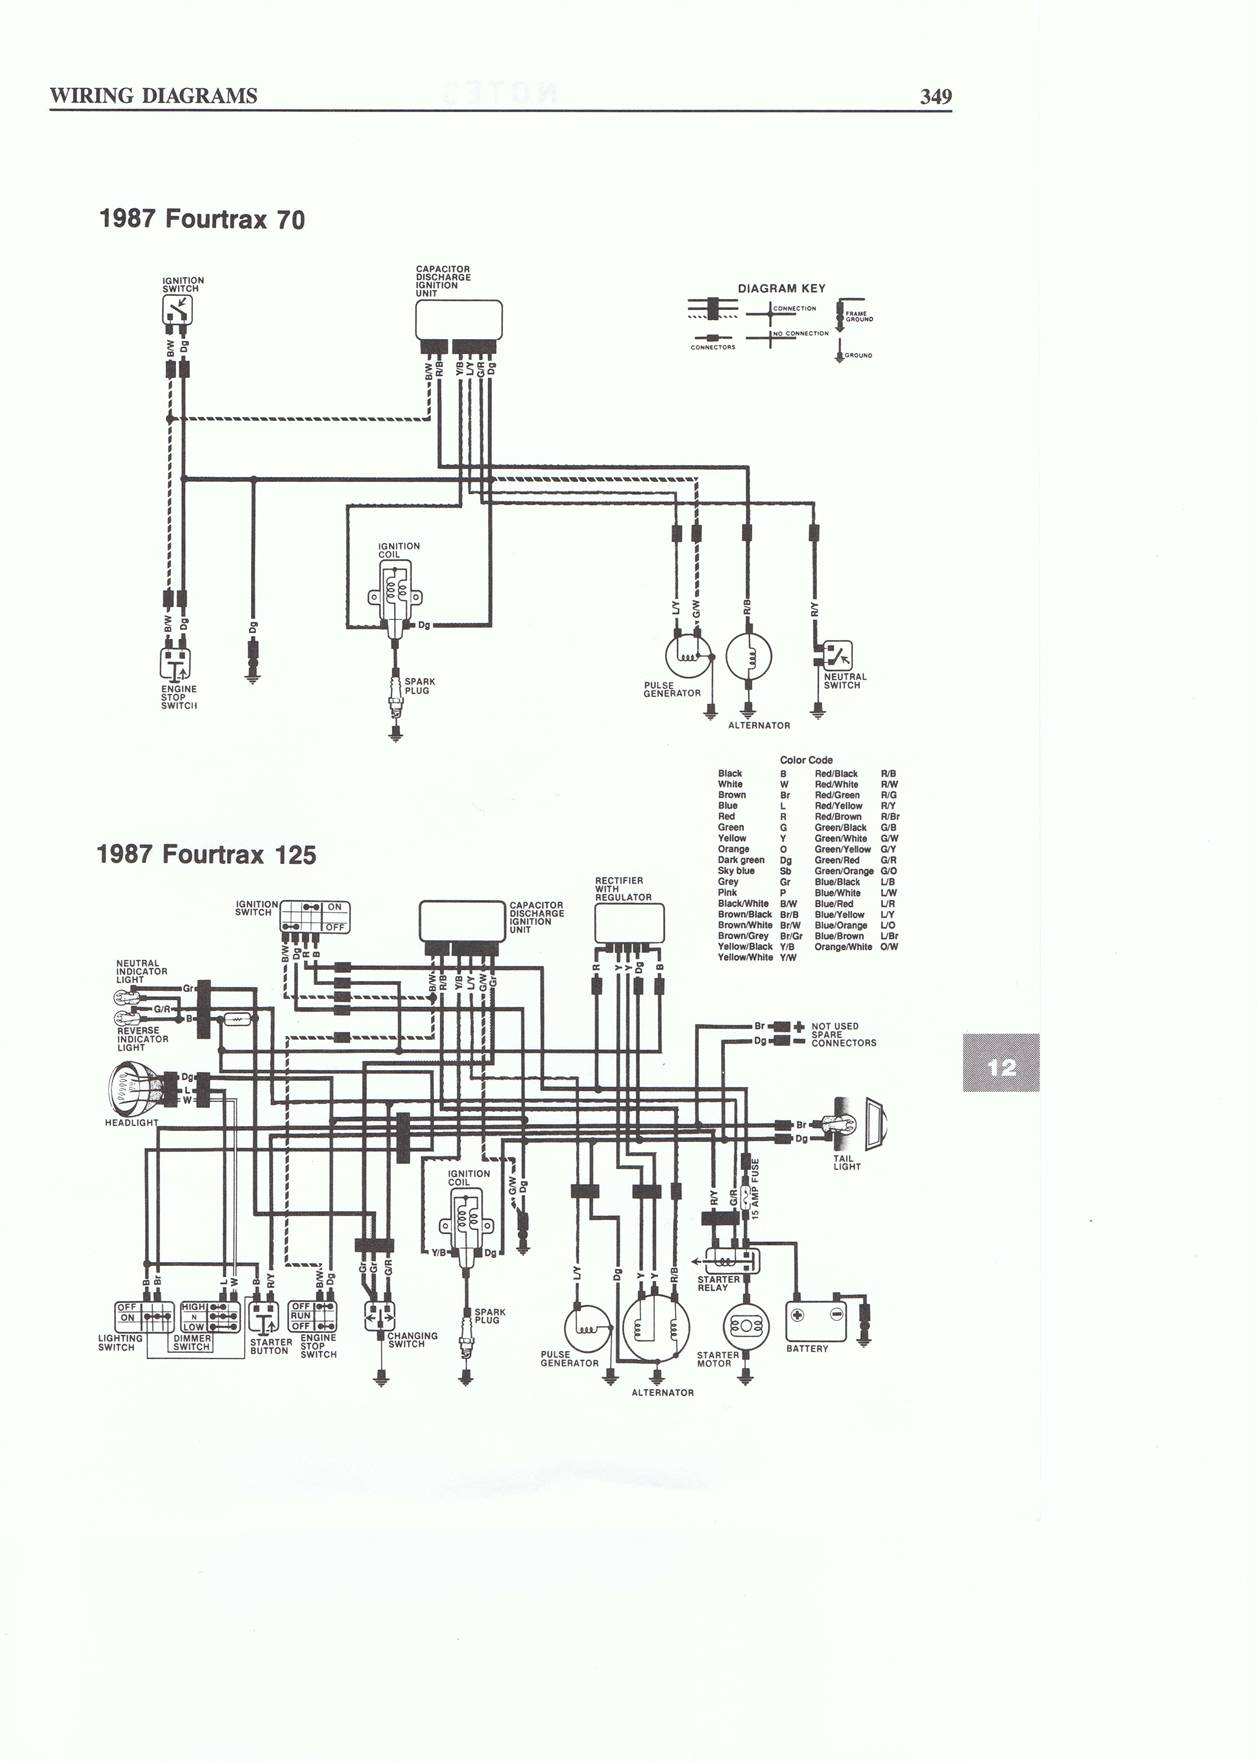 gy6 engine wiring diagram?t=1398725710 gy6 engine wiring diagram  at metegol.co